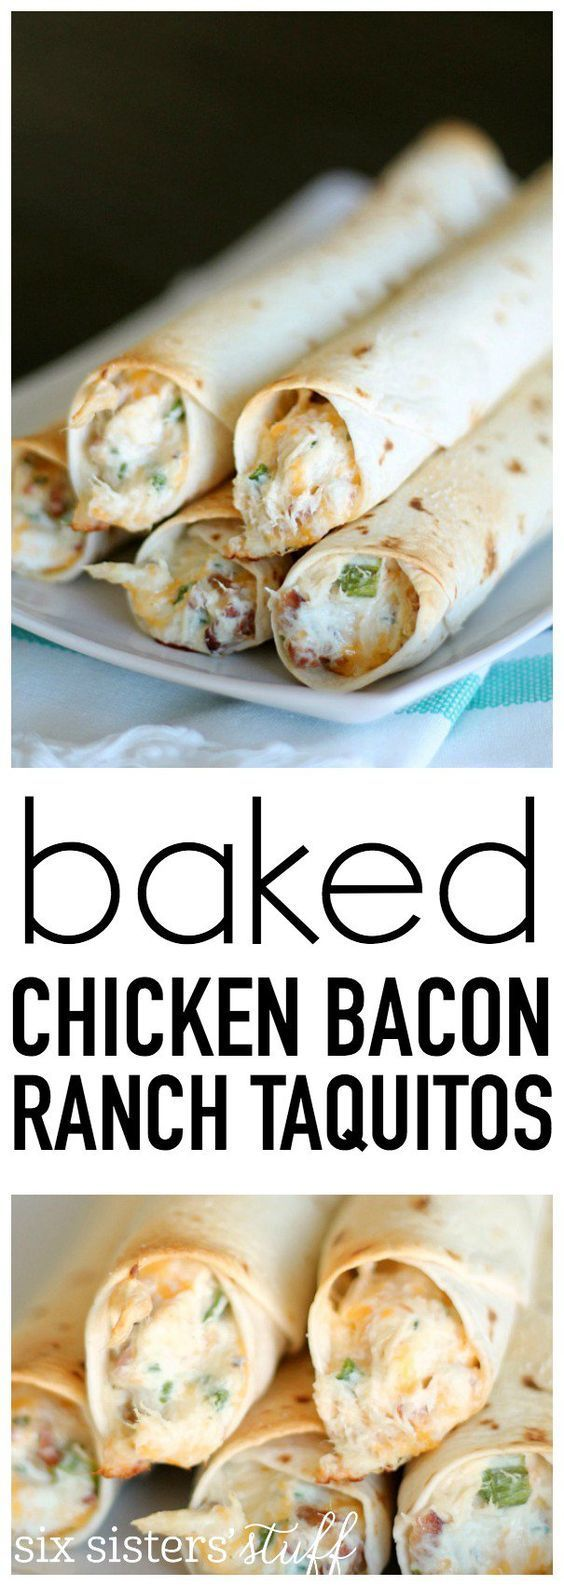 BAKED CHICKEN BACON RANCH TAQUITOS | Food And Cake Recipes